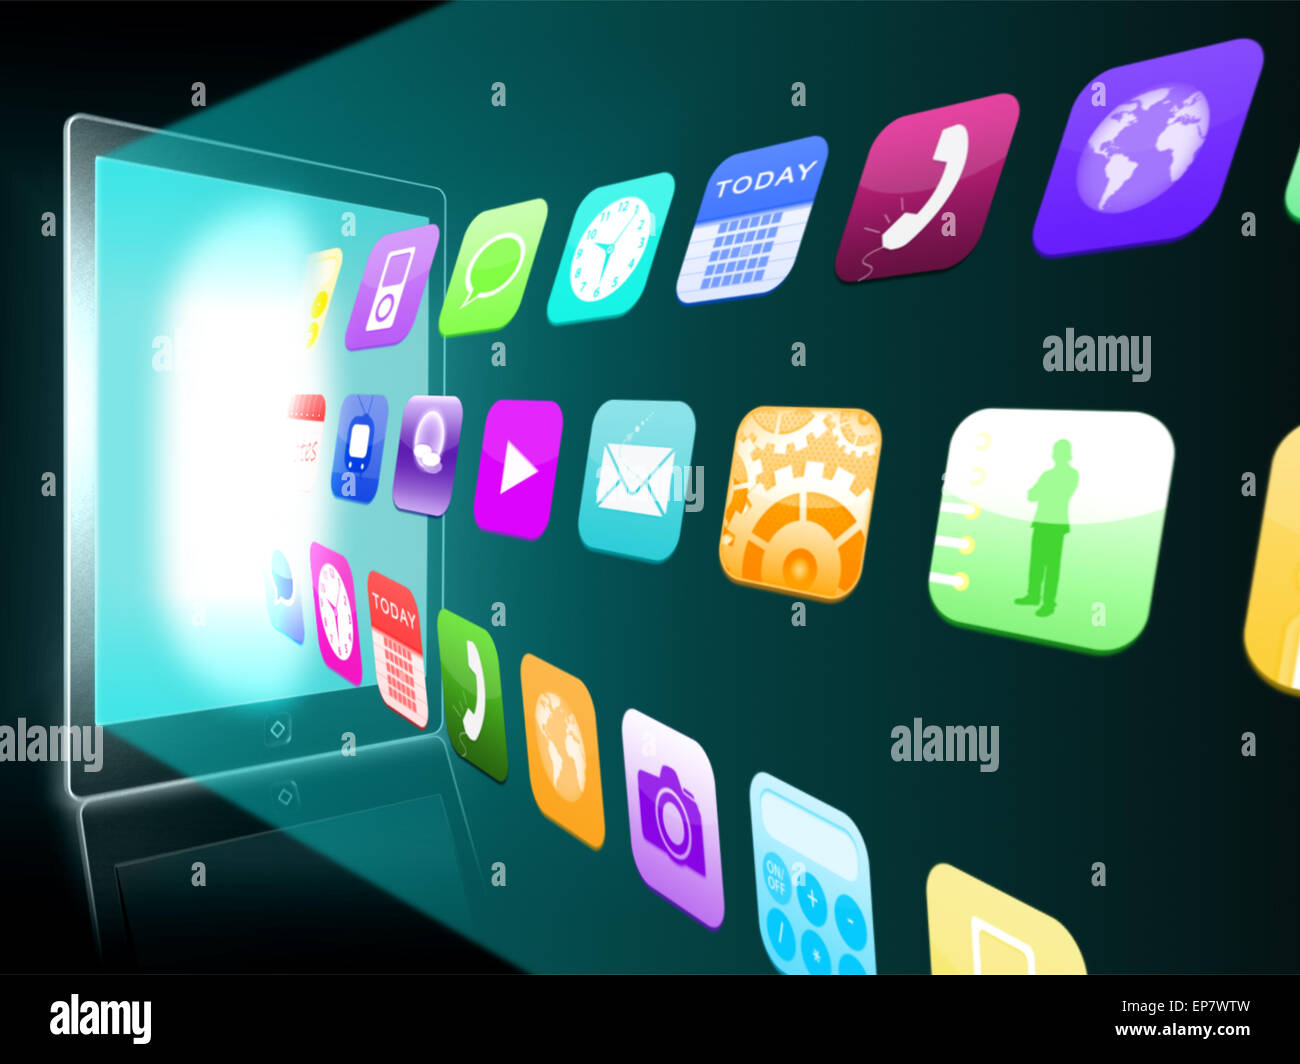 Holographic applications coming out from a tablet pc Stock Photo